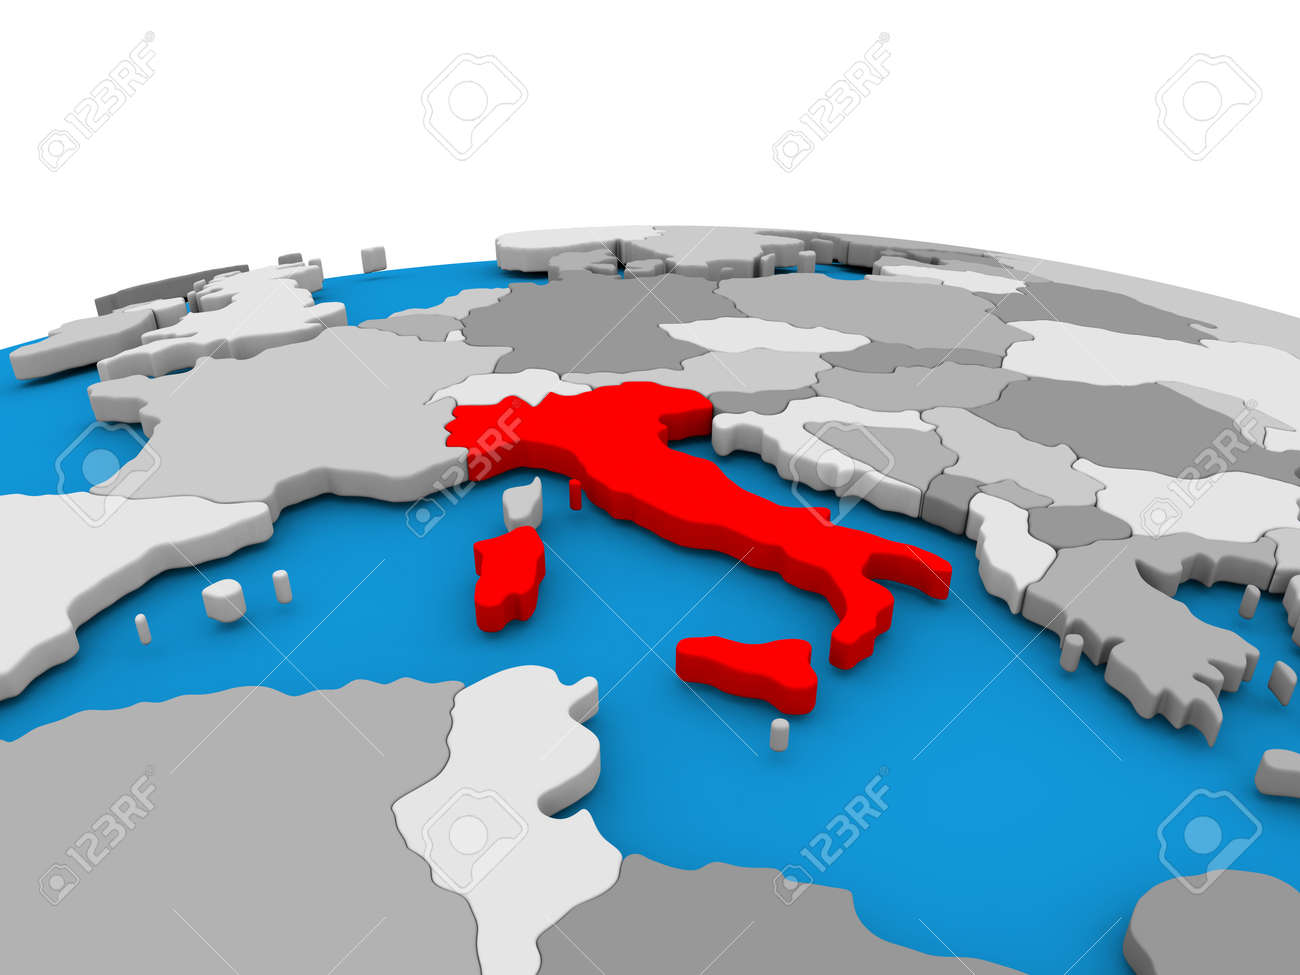 Map Of Italy Simple.Stock Illustration